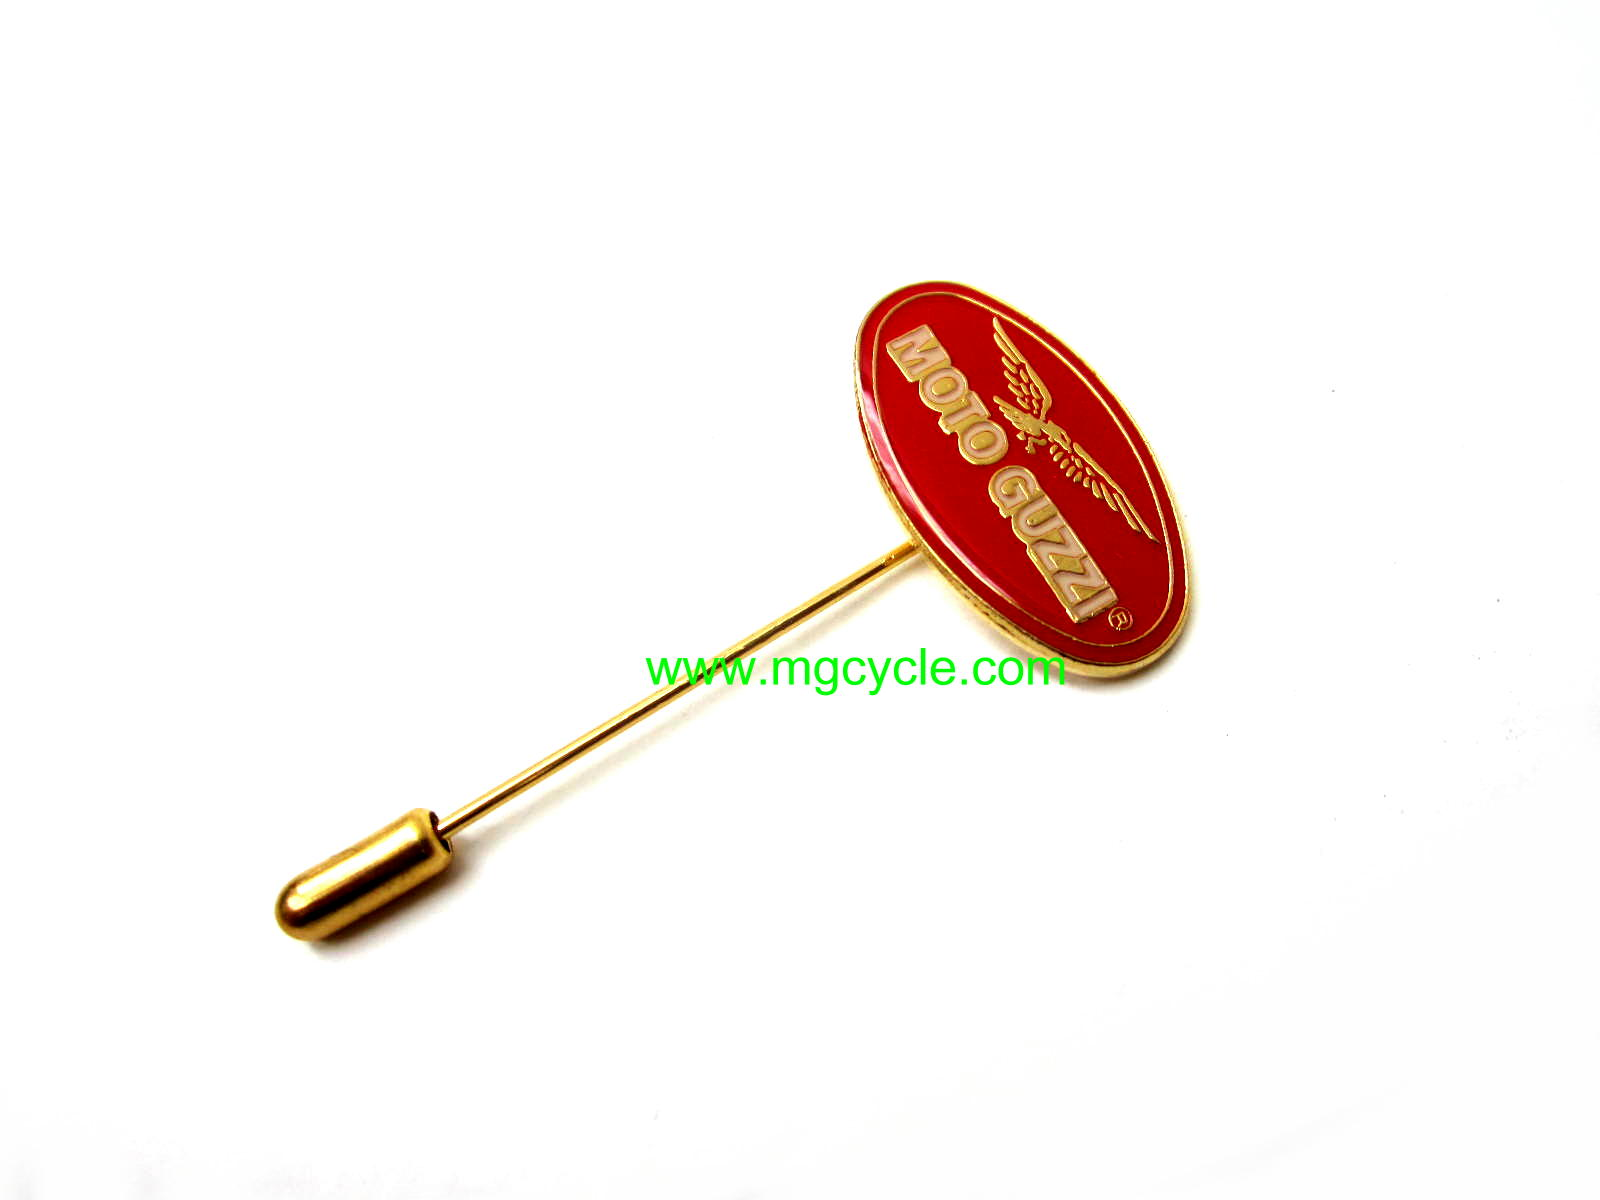 Guzzi oval stick pin, lapel pin, red and white